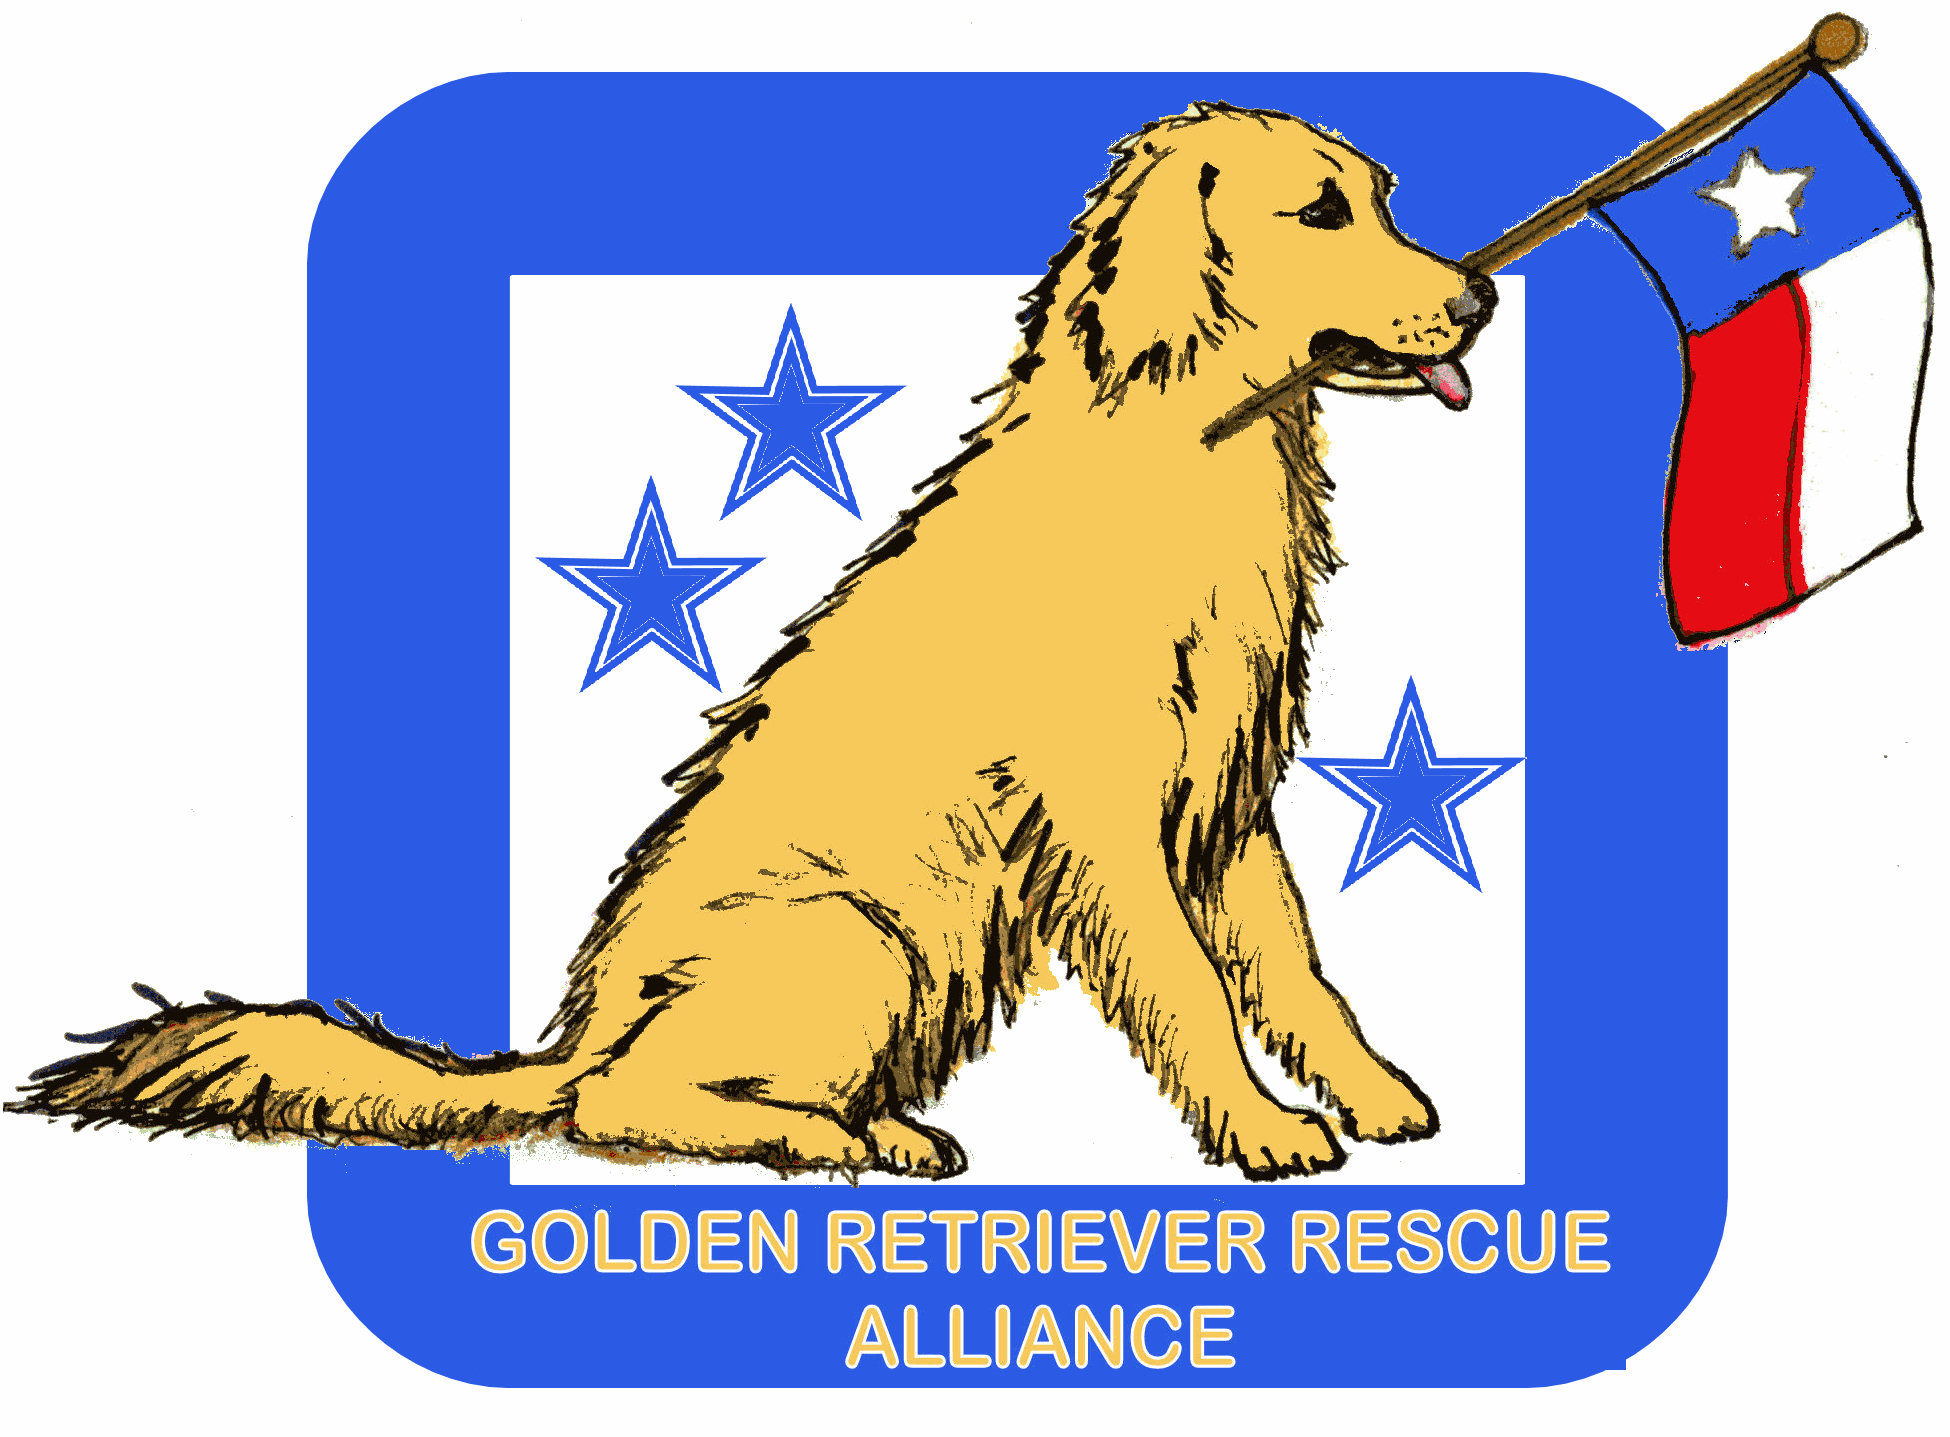 Golden Retriever Rescue Alliance